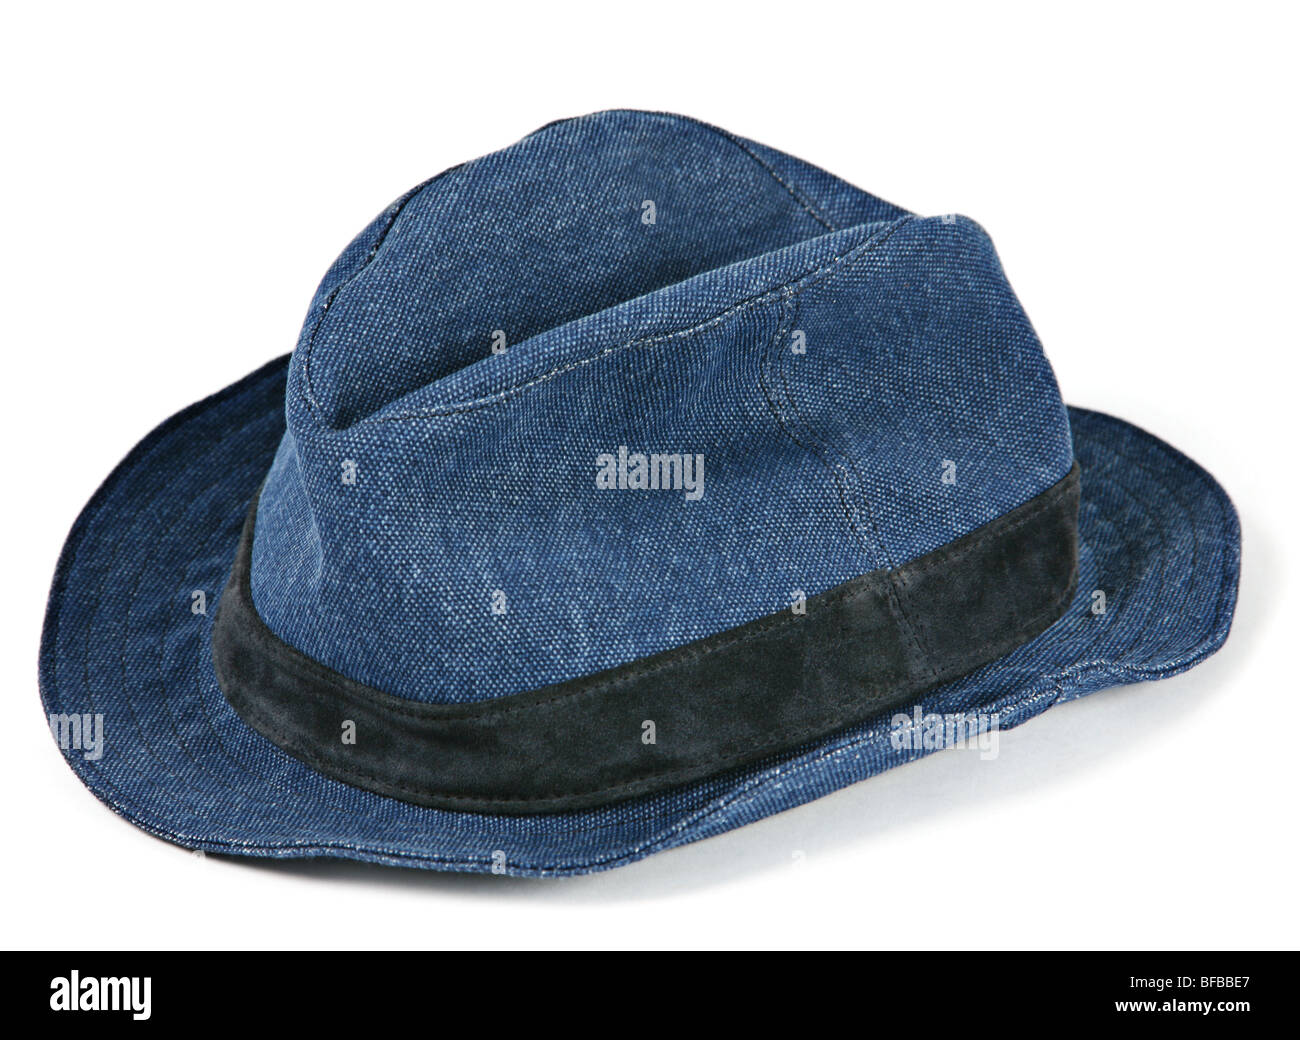 Blue hat accessory on white background - Stock Image